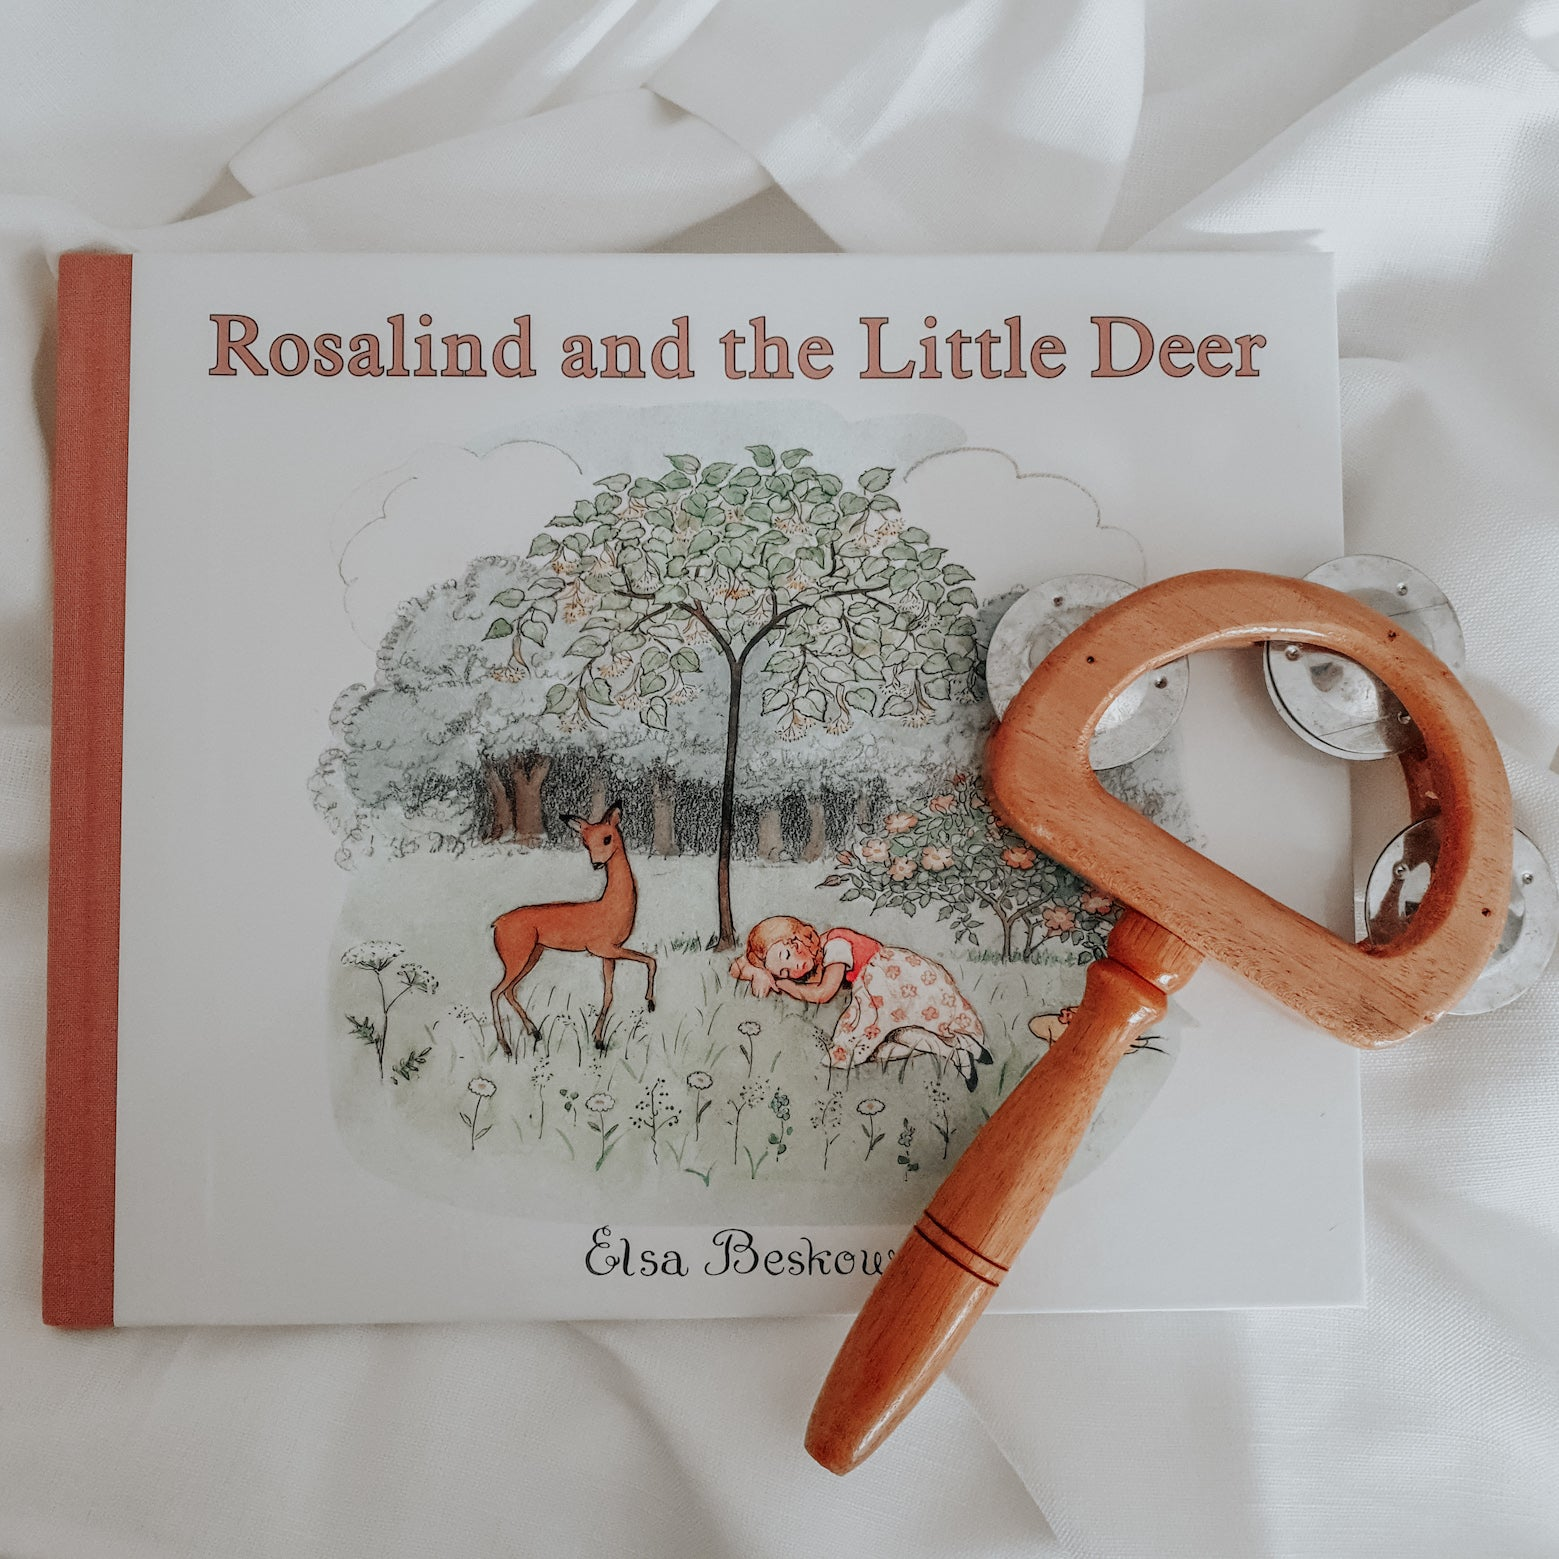 Rosalind and the Little Deer - children's book by author Elsa Beskow